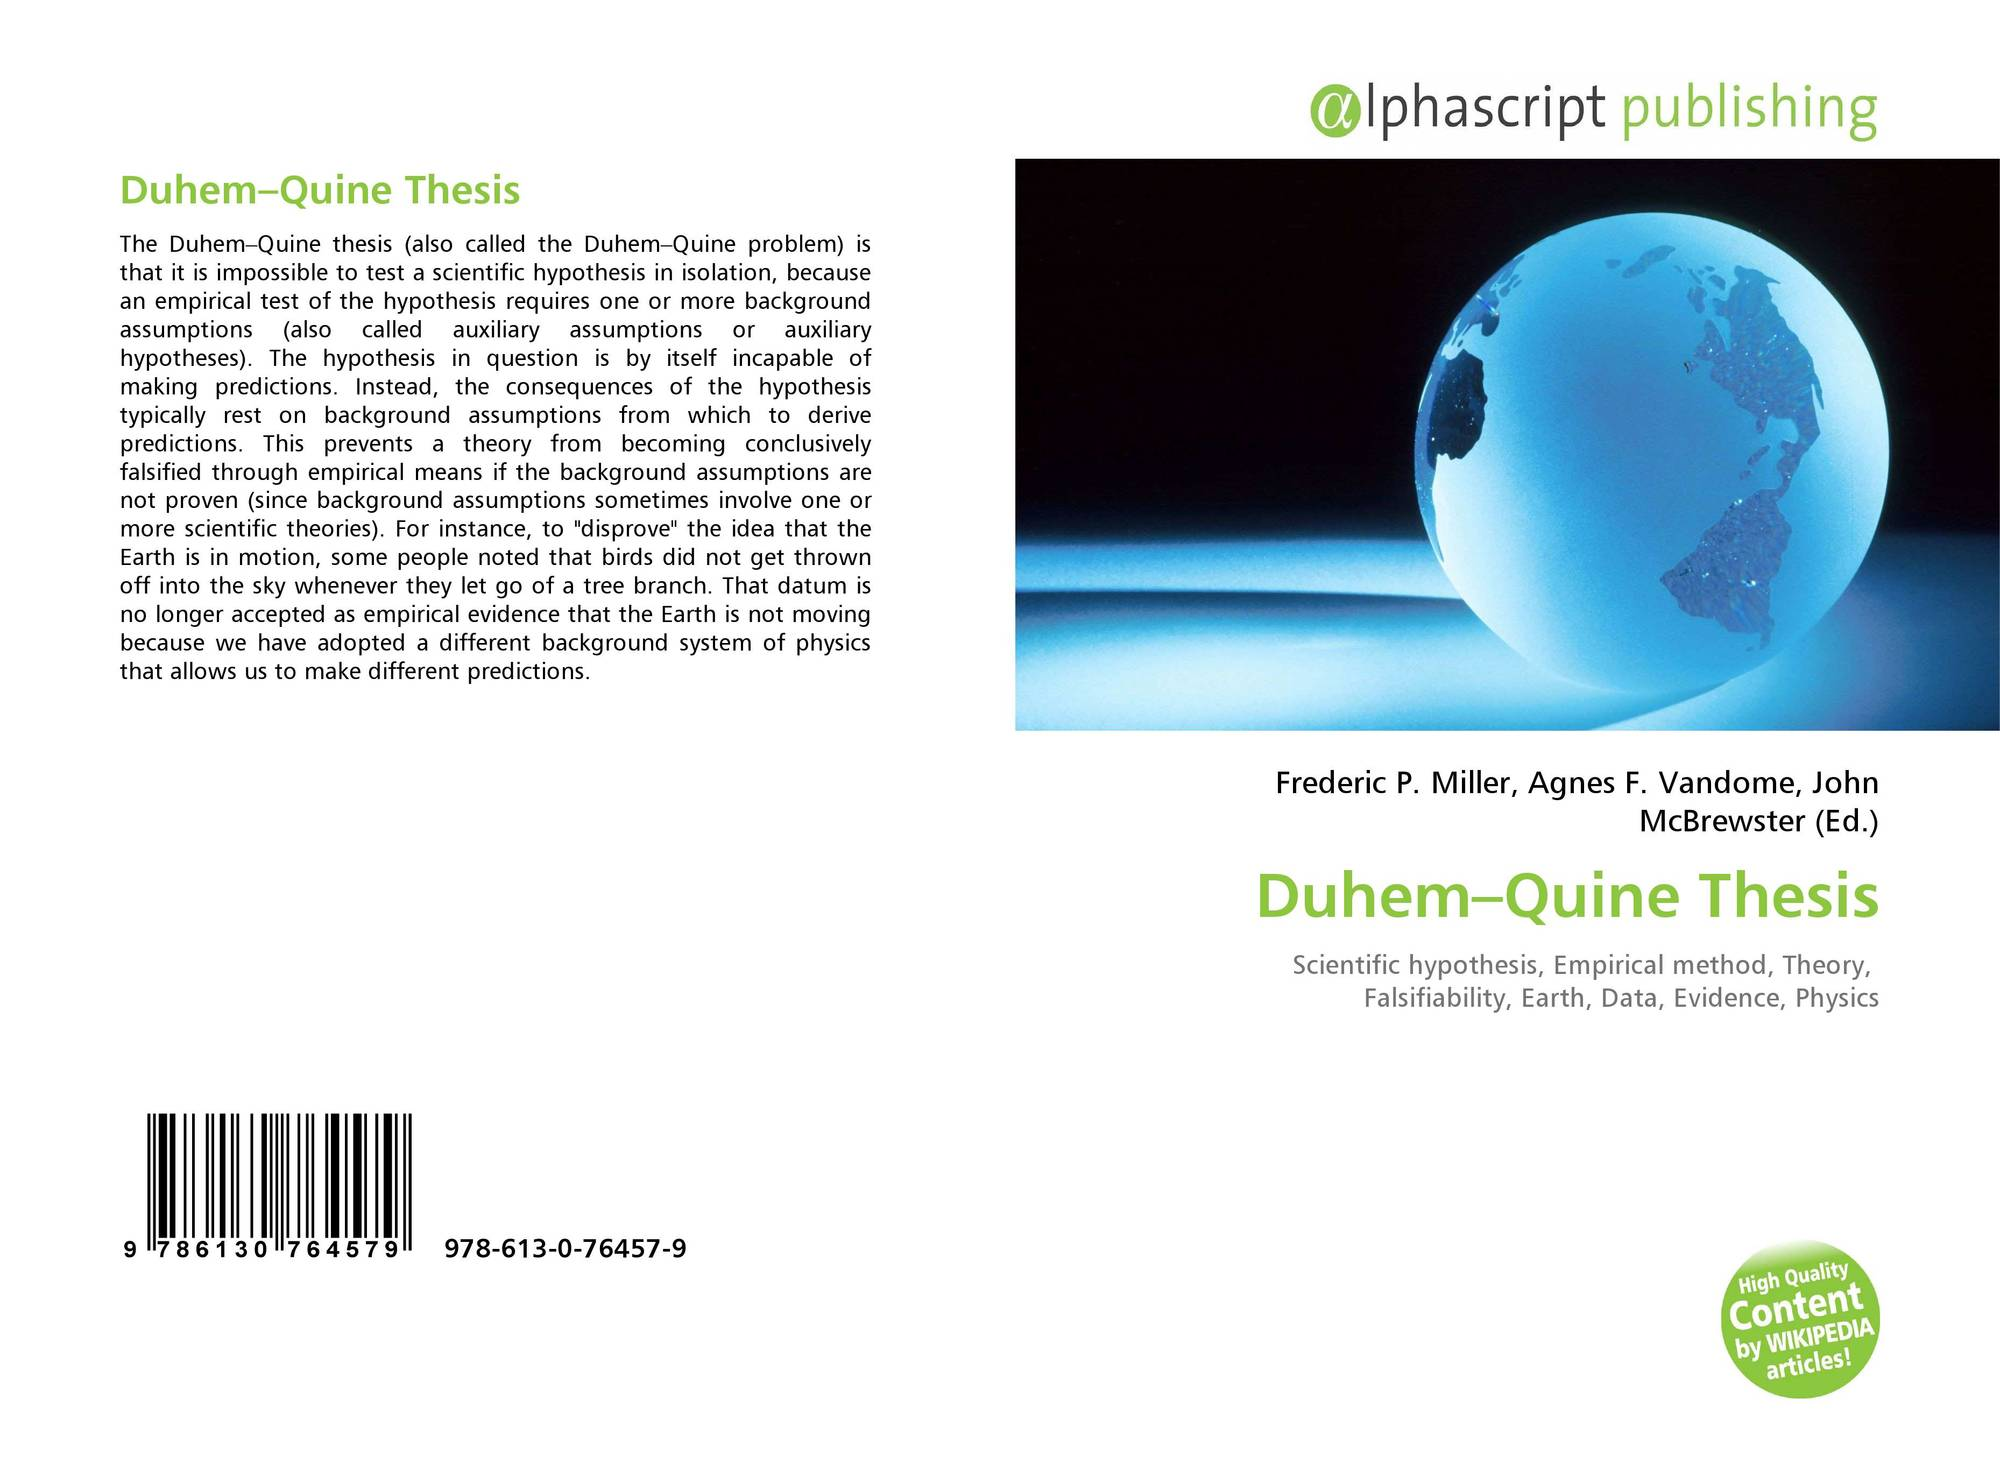 duhem-quine thesis falsificationism A popular criticism of karl popper is that his criterion of falsifiability runs aground  on the duhem-quine thesis that is, for any putative falsification, it's always.